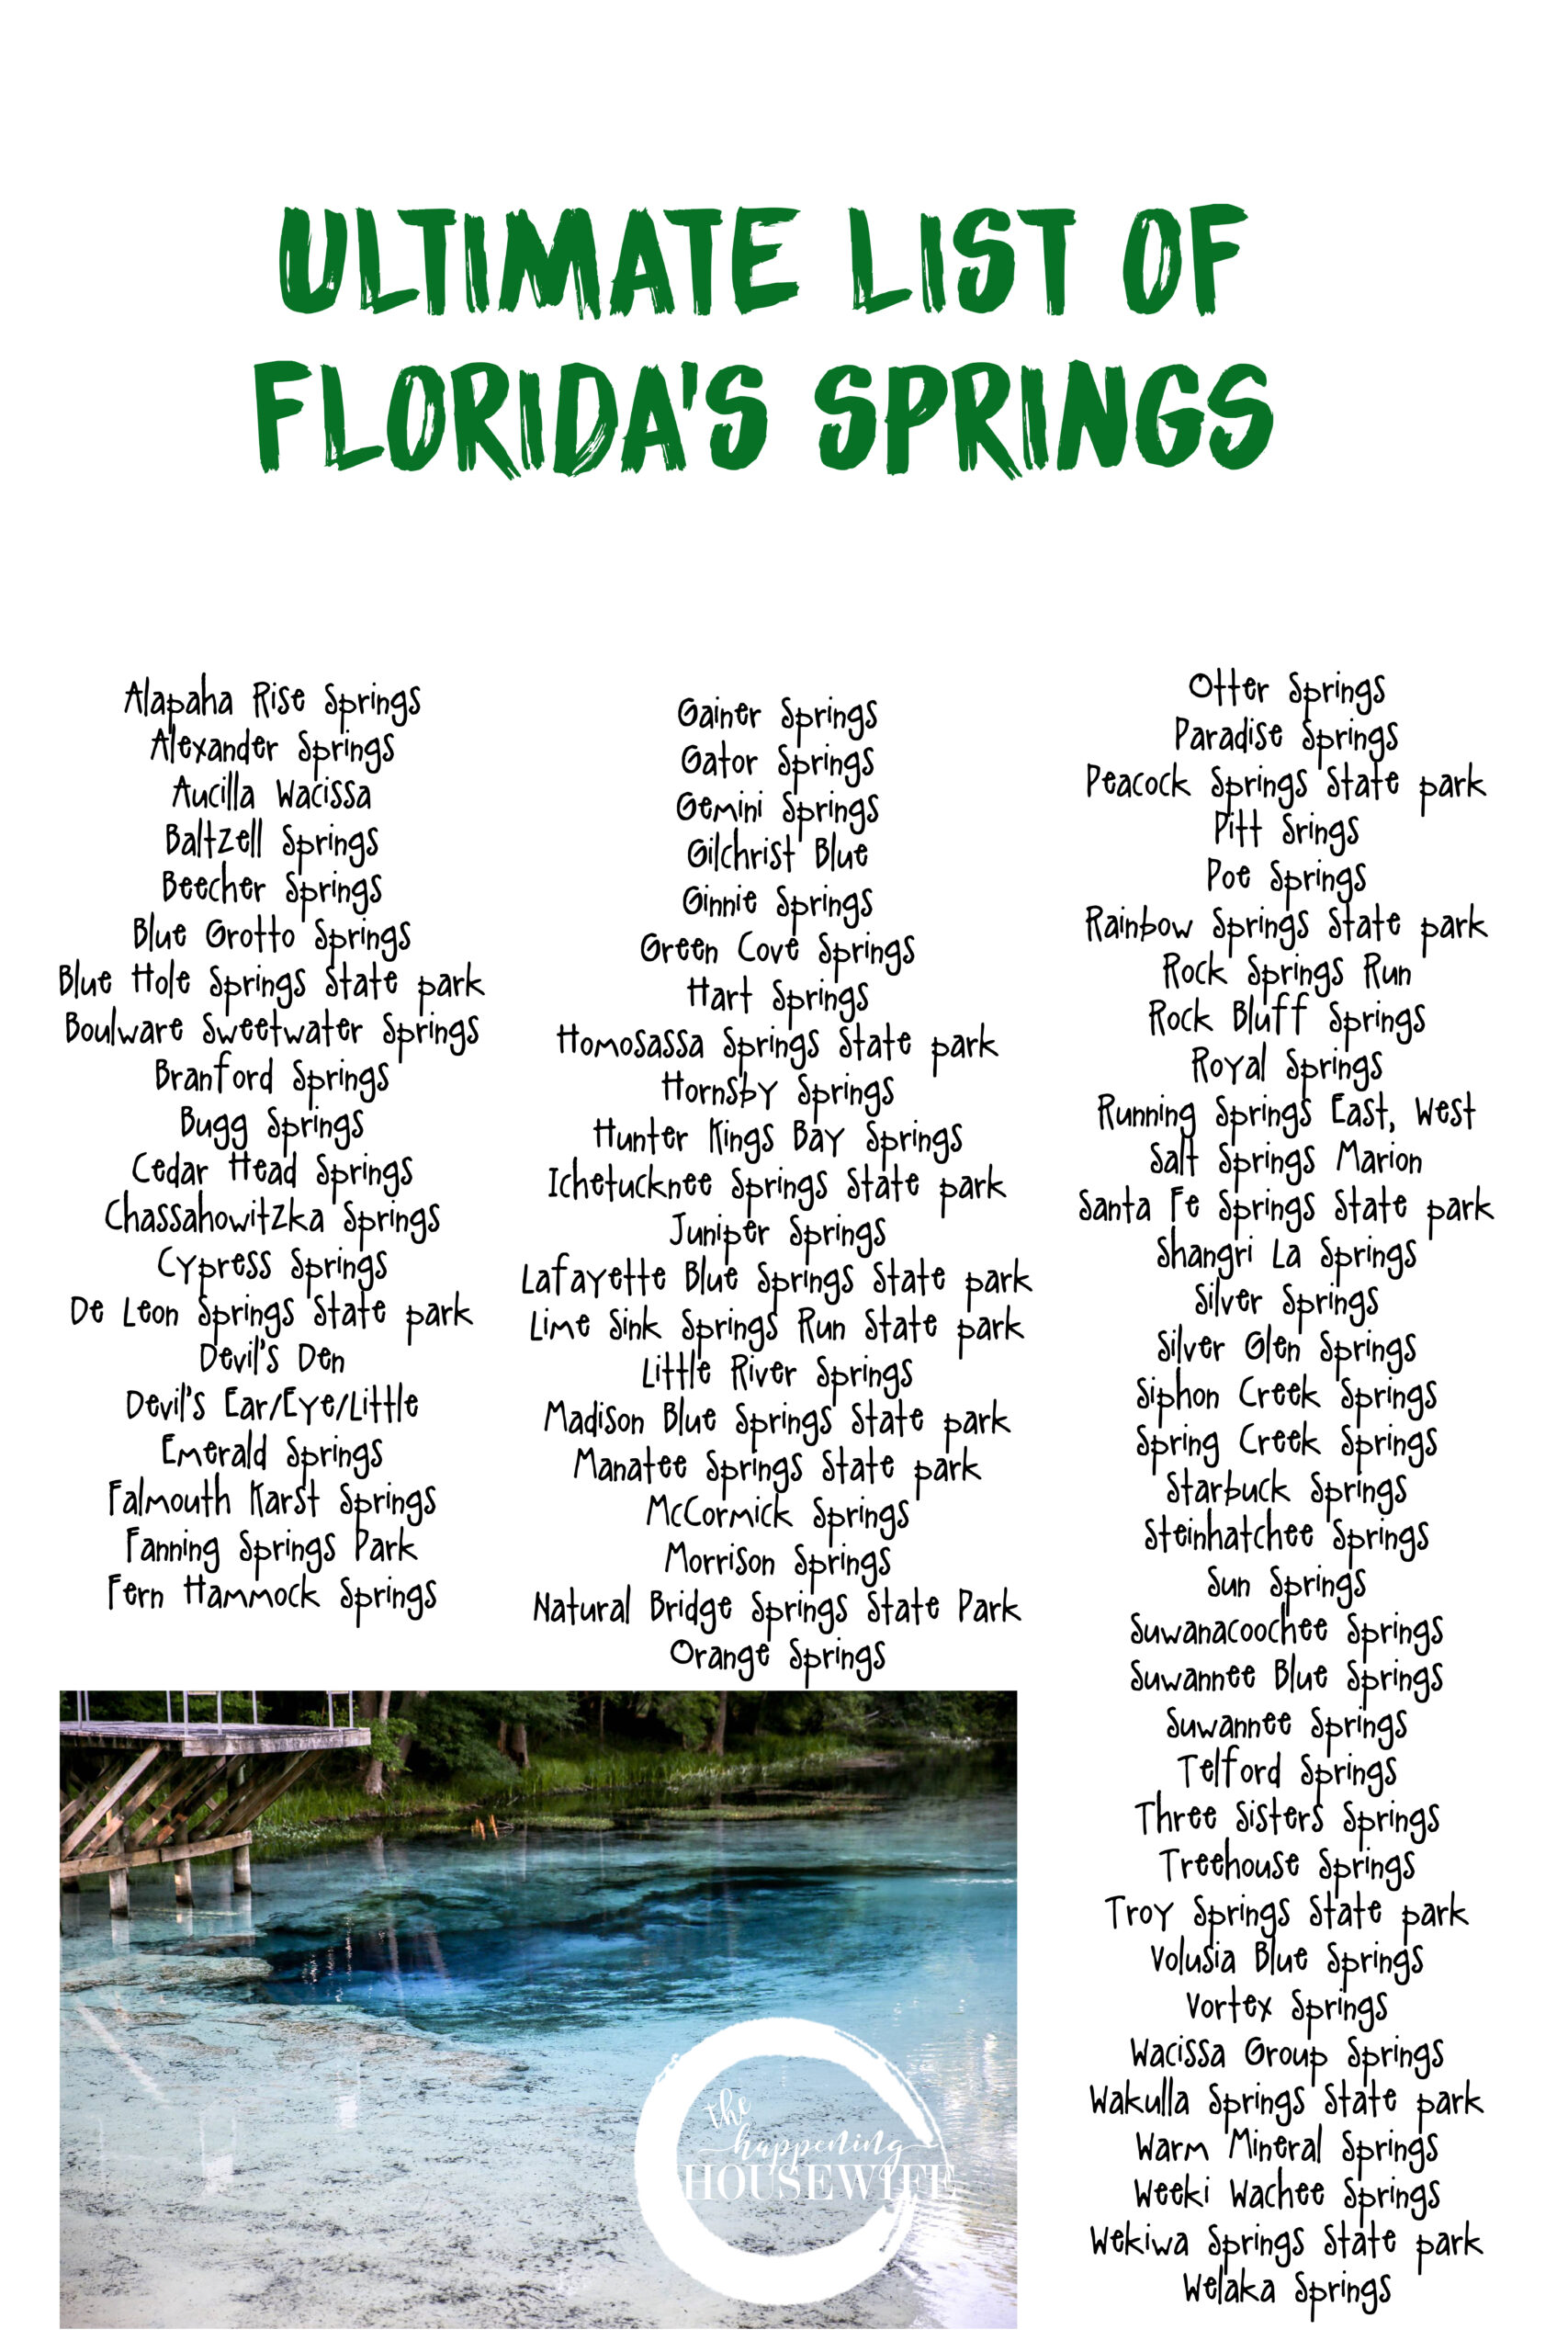 Ultimate List Fl Springs Guide.jpg